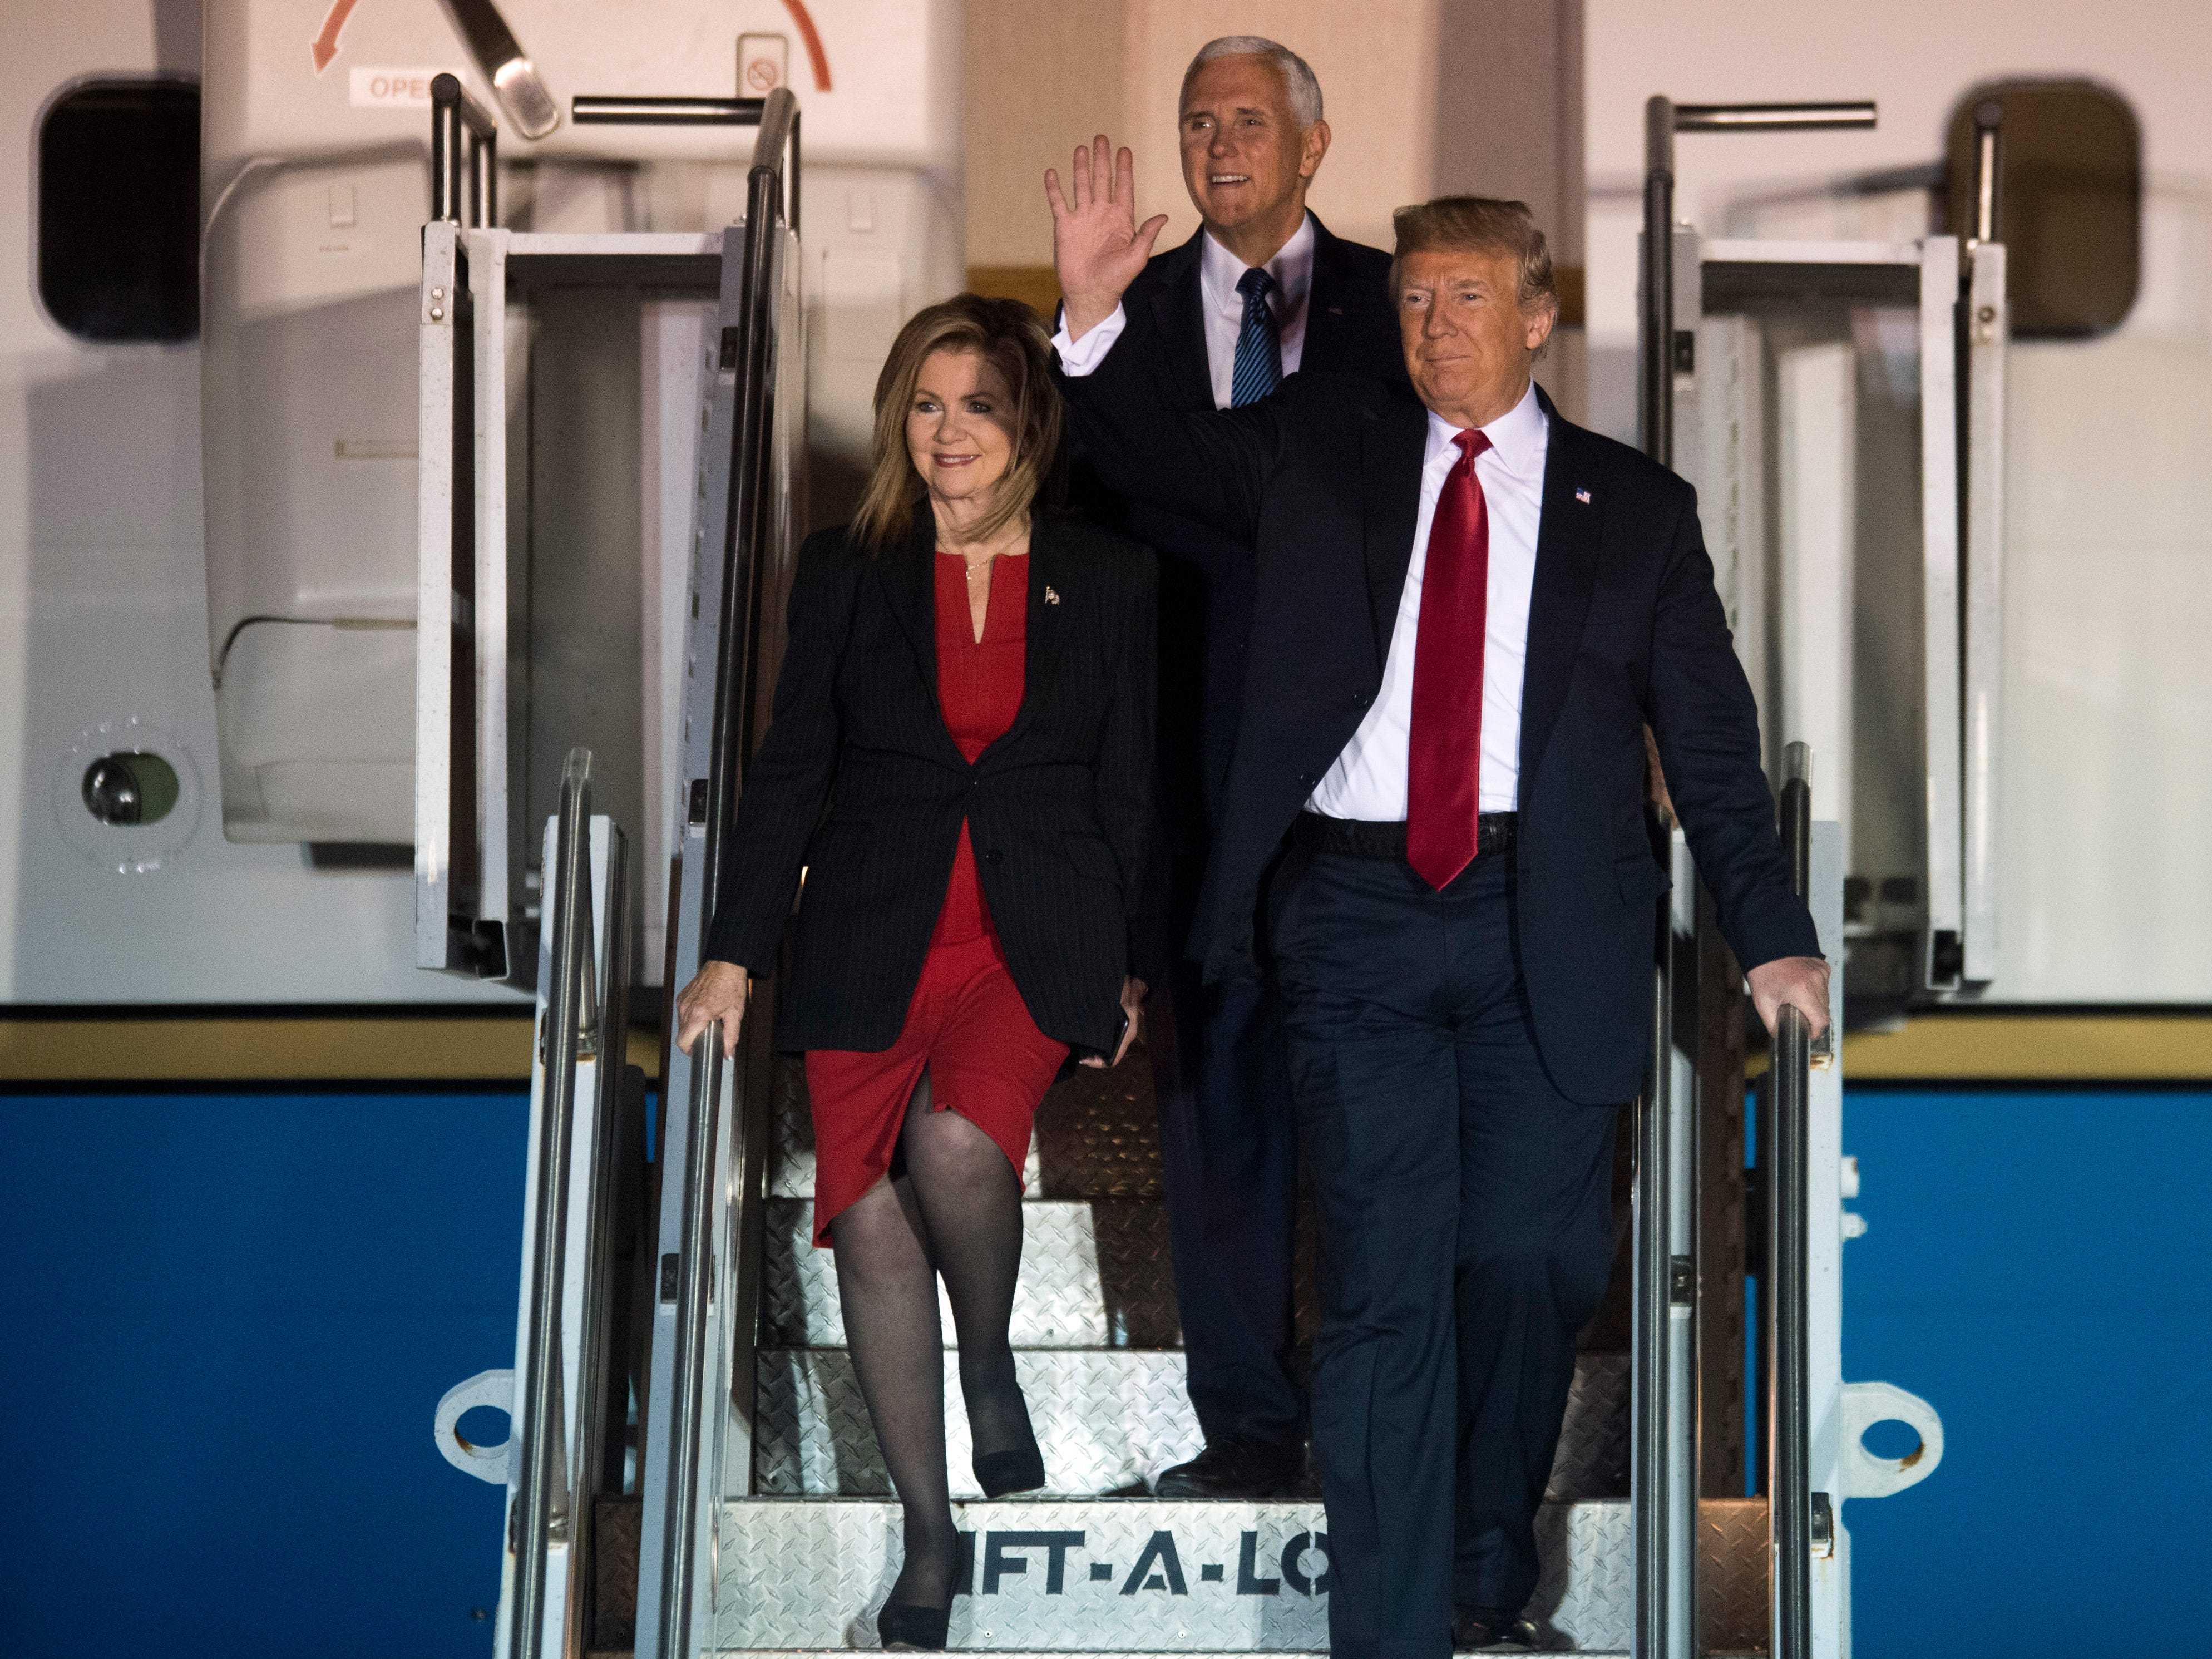 President Donald Trump, Vice President Mike Pence, and Rep. Marsha Blackburn greet the crowd as they descend from Air Force One at Wilson Air Center at the Chattanooga Metropolitan Airport on Sunday, November 4, 2018.